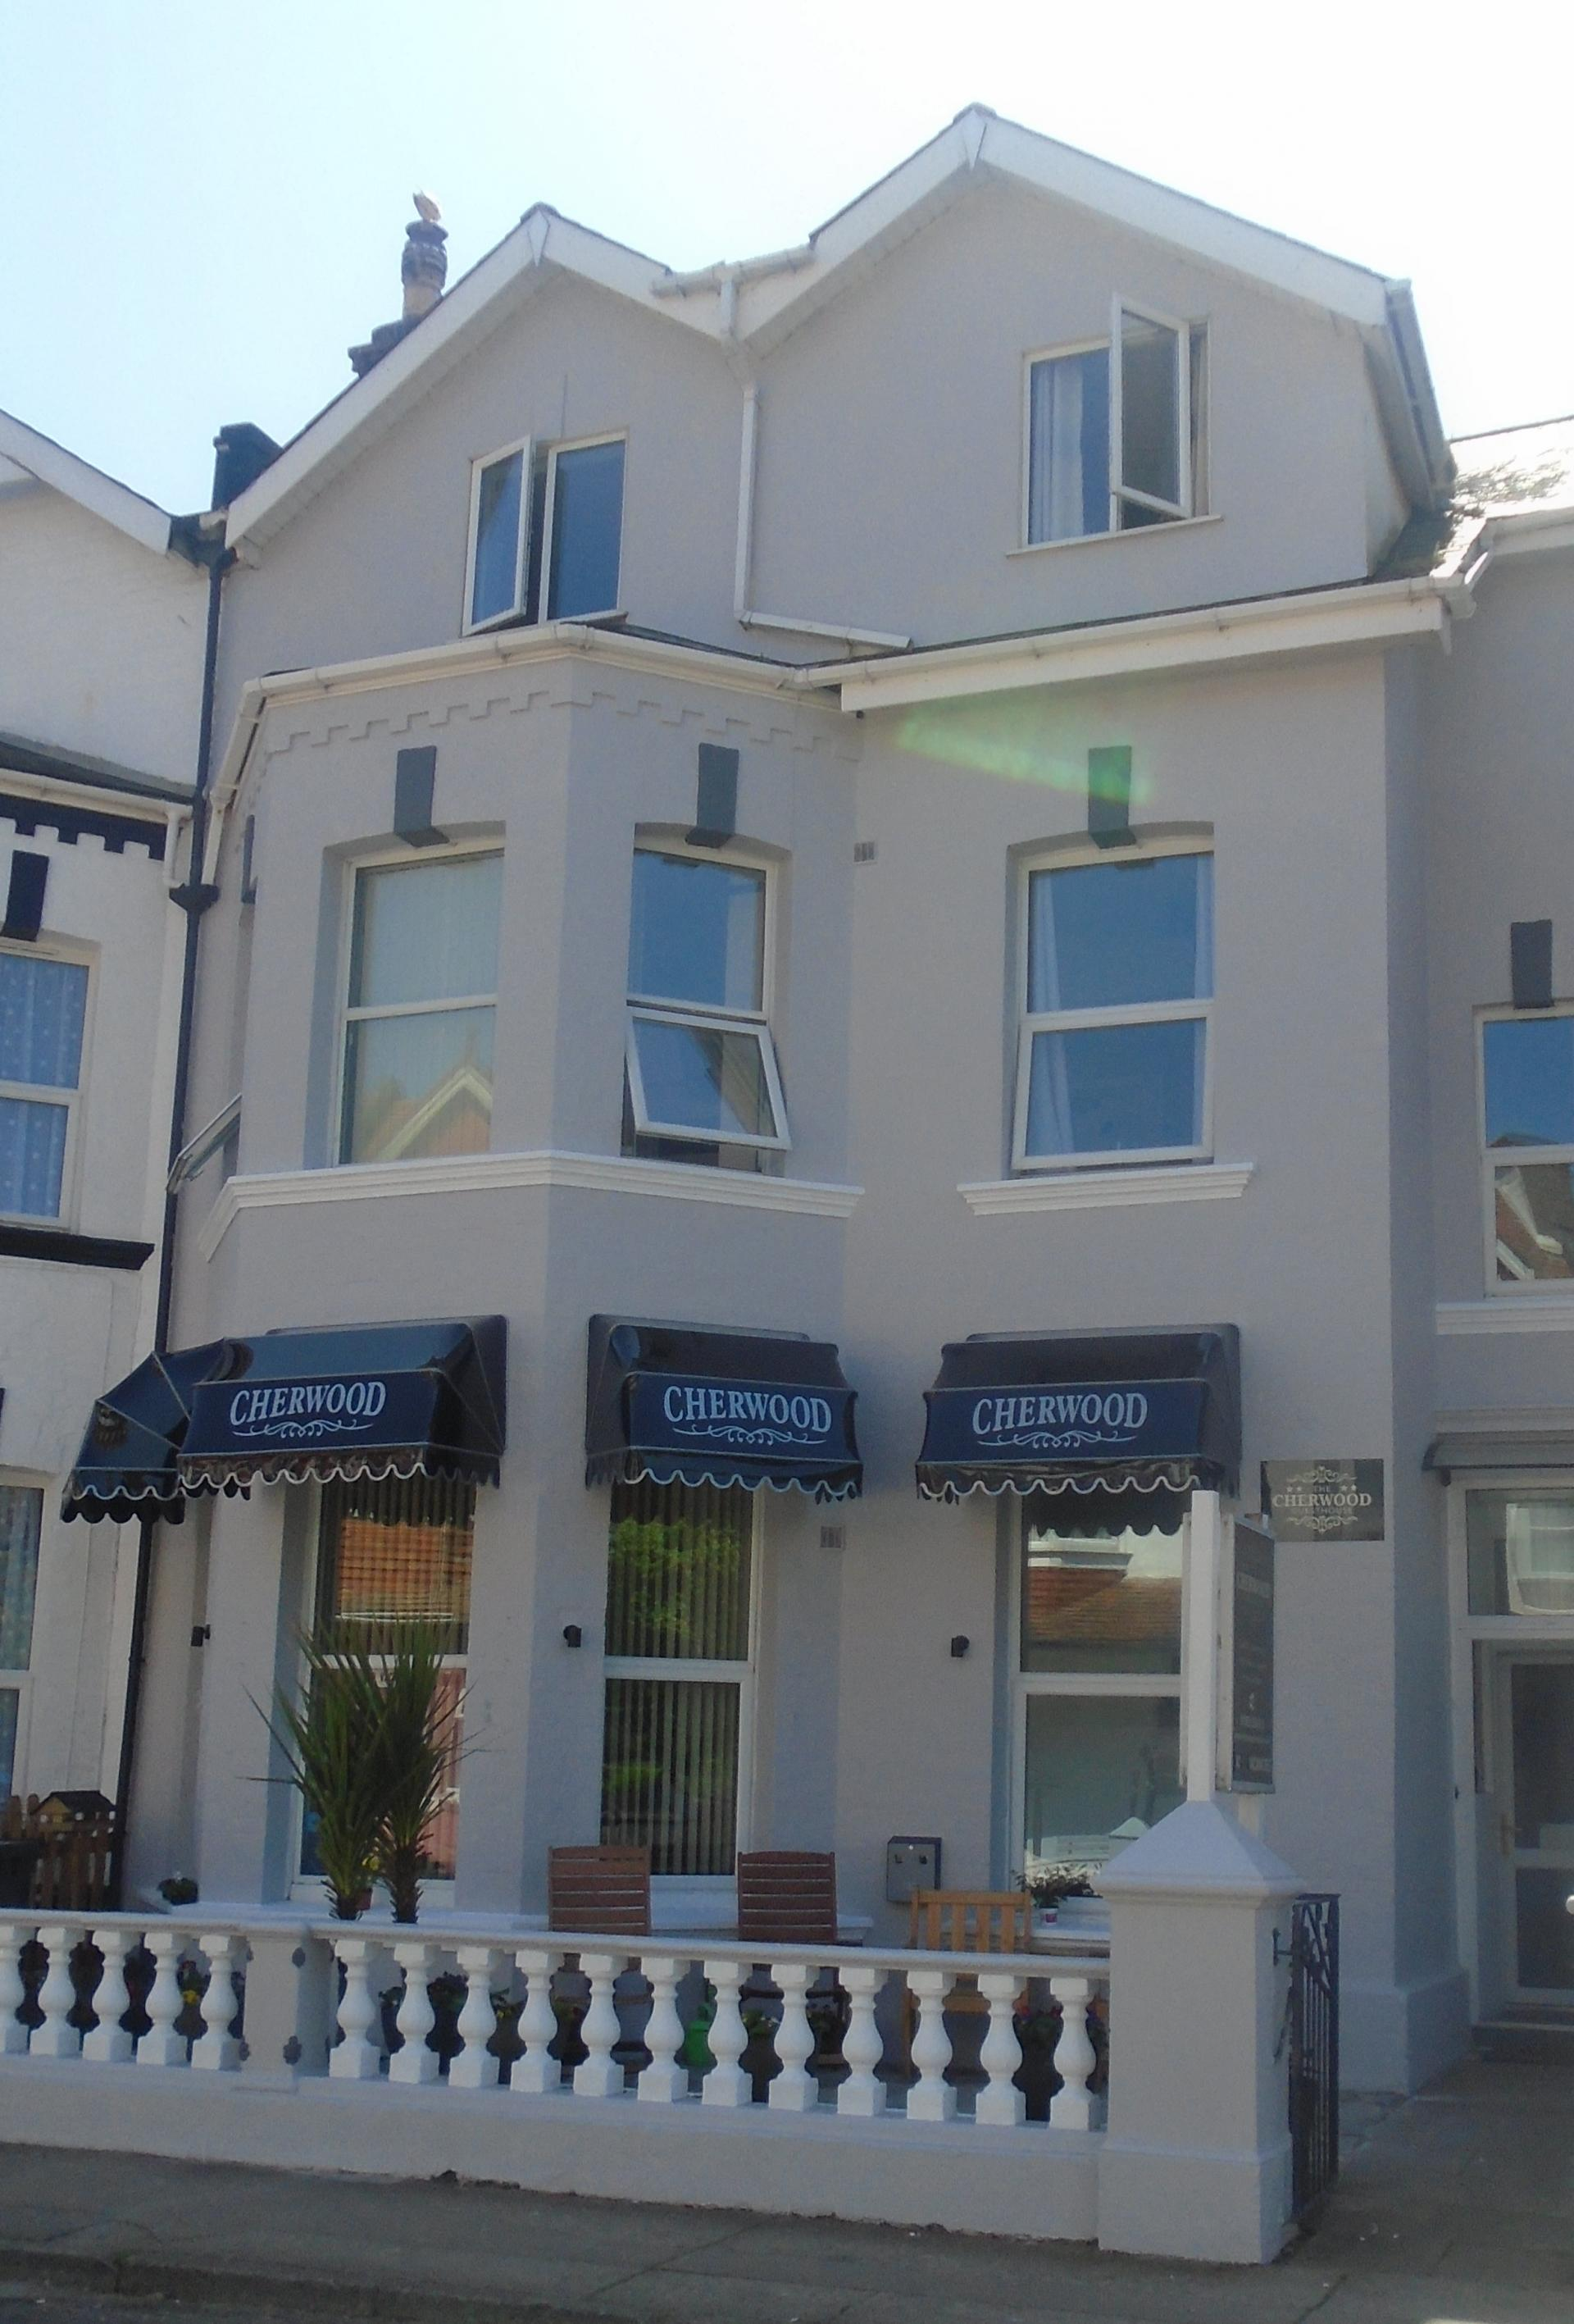 Cherwood Hotel in Paignton